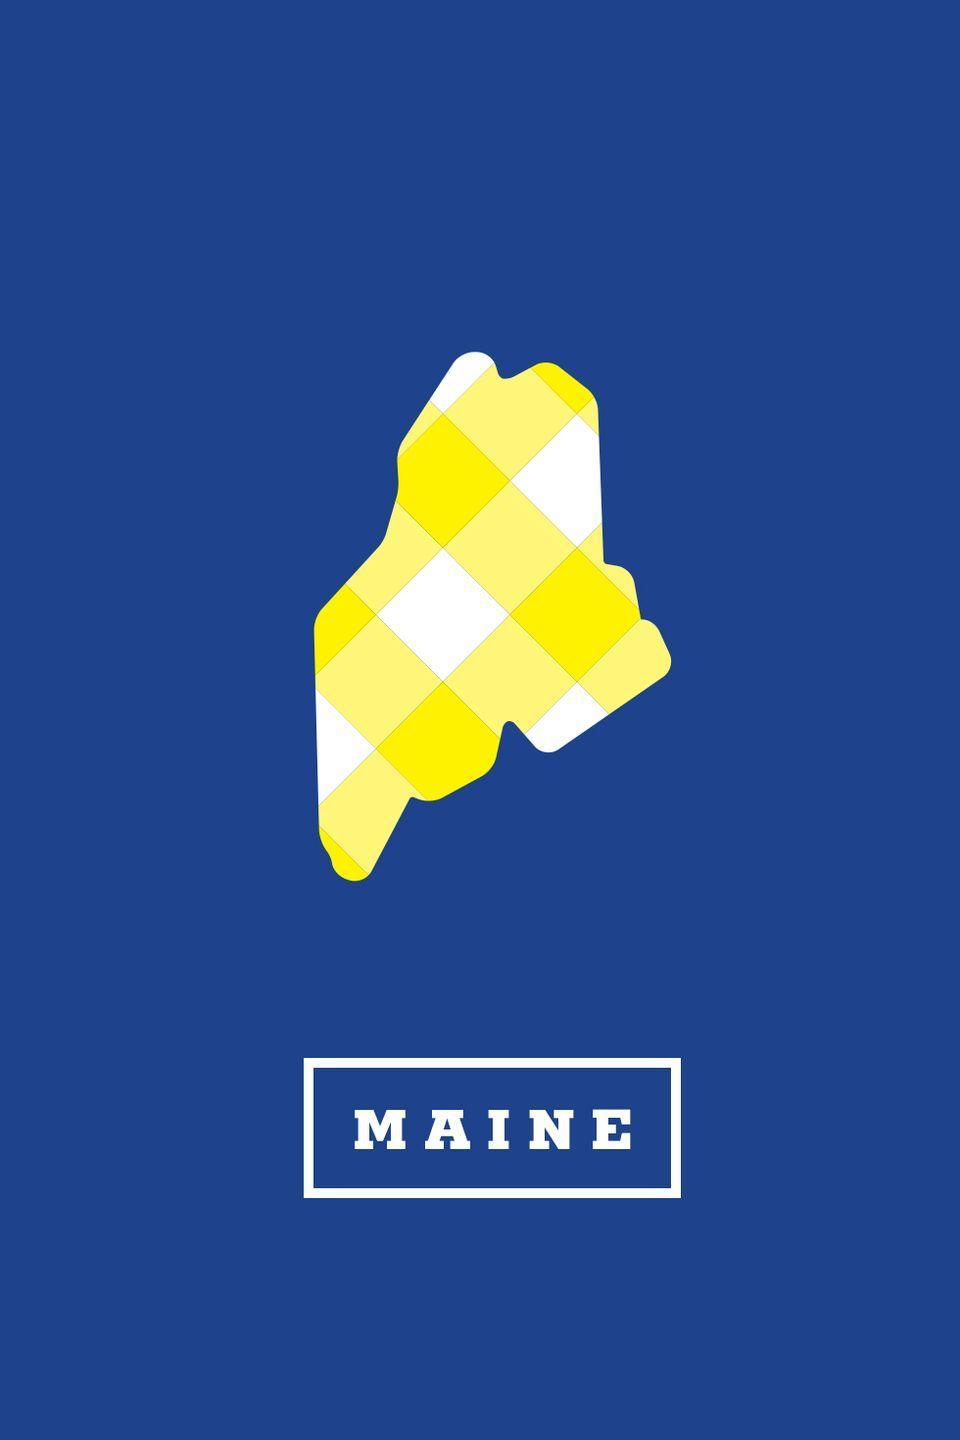 """<p>•You know Renys is the only store you'll ever need.</p><p>•You grew up <a href=""""https://www.countryliving.com/life/a35291/what-its-really-like-to-live-in-maine/"""" rel=""""nofollow noopener"""" target=""""_blank"""" data-ylk=""""slk:going to bean suppers"""" class=""""link rapid-noclick-resp"""">going to bean suppers</a> and searching for fiddleheads.</p><p>•You say """"wicked"""" instead of """"very"""" or """"really"""".</p>"""